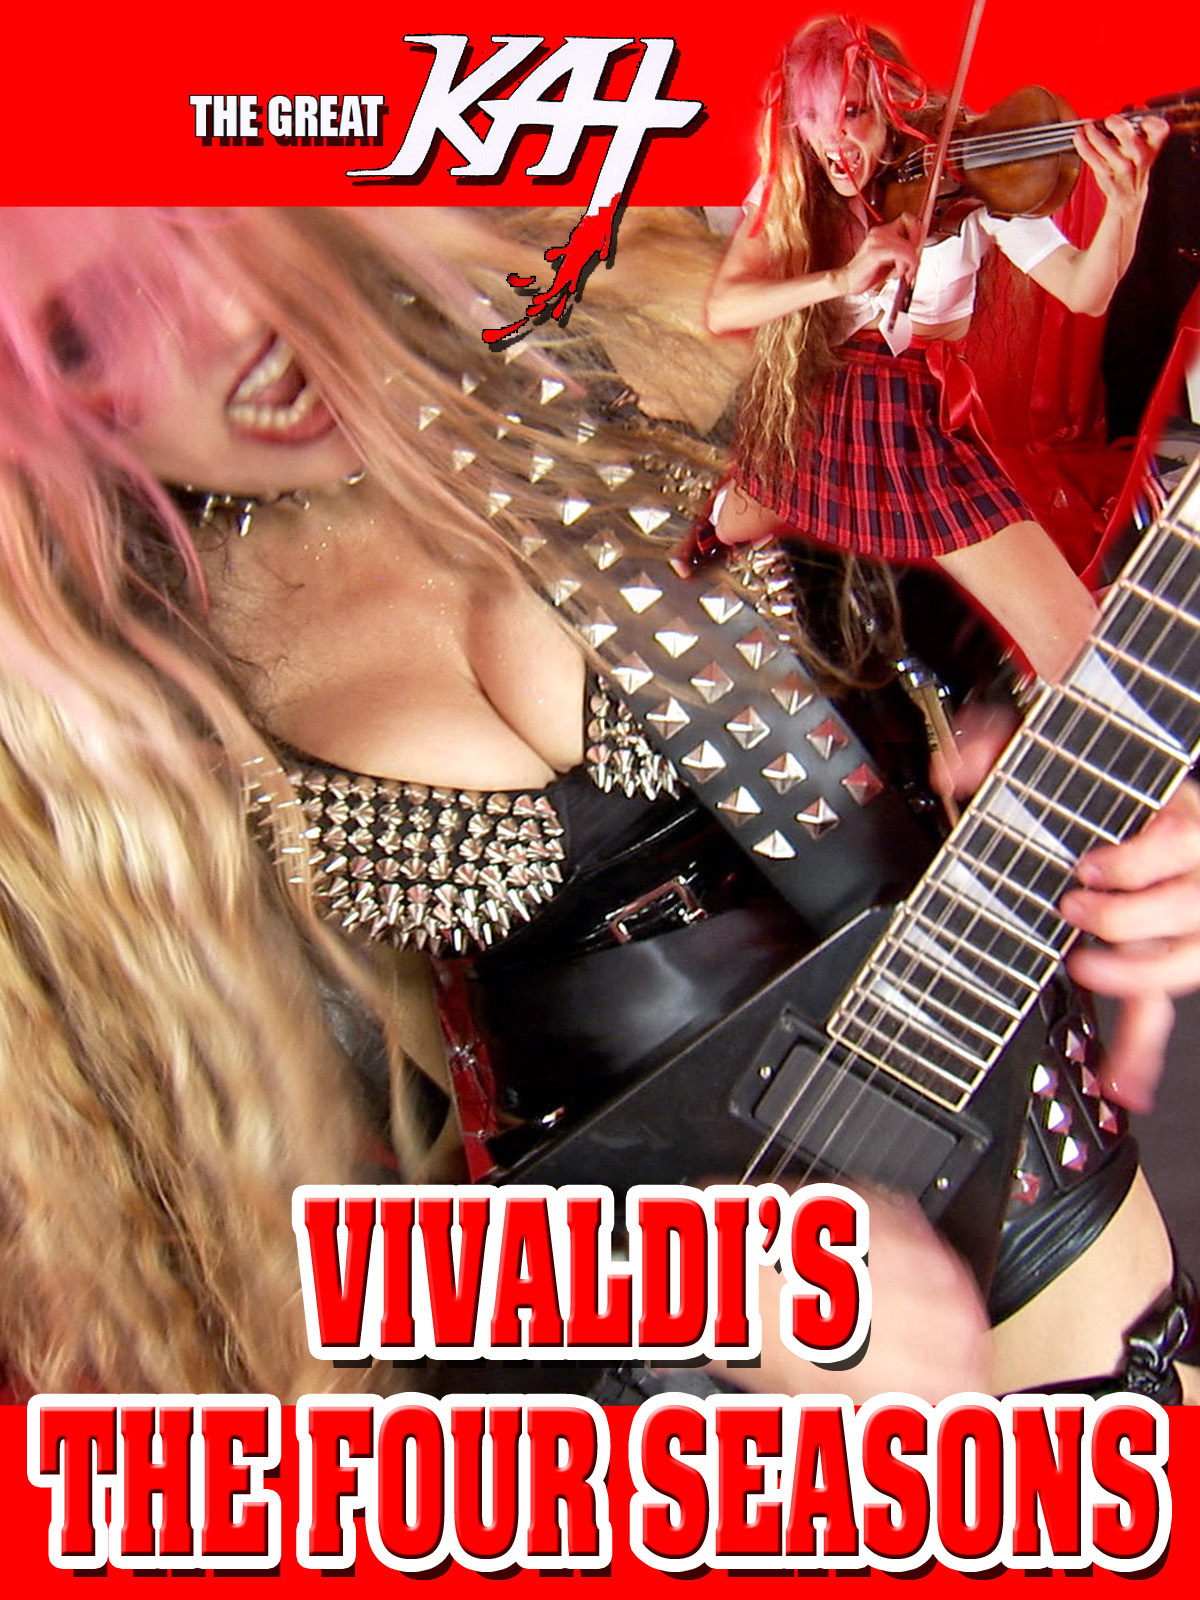 """AMAZON PREMIERE of THE GREAT KAT'S VIVALDI'S """"THE FOUR SEASONS"""" MUSIC VIDEO from UPCOMING DVD! WATCH FREE on AMAZON PRIME https://www.amazon.com/dp/B01M1H4E70 The Great Kat, Carnegie Recital Violin Soloist/""""Top 10 Fastest Shredders Of All Time"""" Shreds VIVALDI'S """"THE FOUR SEASONS"""" at Hyperspeed! This stunning Iconic Music Video stars The QUEEN of BOTH Classical Violin AND Shred Guitar, The Great Kat's BLISTERING virtuosity, """"Antonio Vivaldi"""" composing """"The Four Seasons"""" in Italy 1723 and Great Kat's All-Male Hunk Band. From upcoming new Great Kat DVD! WATCH FREE on AMAZON PRIME at https://www.amazon.com/dp/B01M1H4E70"""